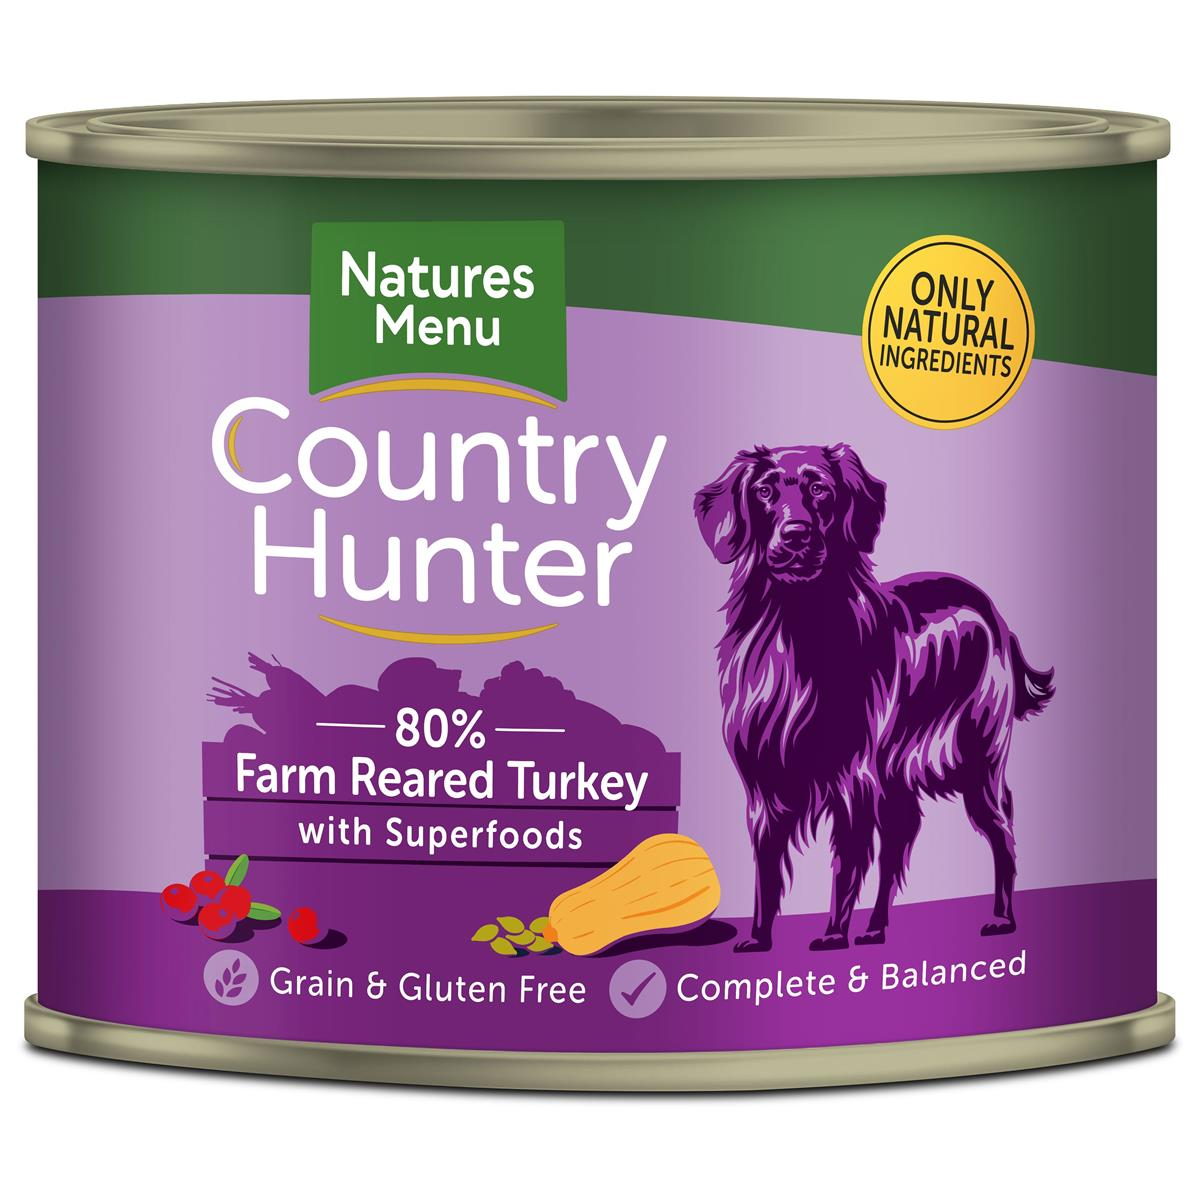 NM Boksemat Hund Country Hunter 80% Kalkun 600g (6stk) Lyselilla